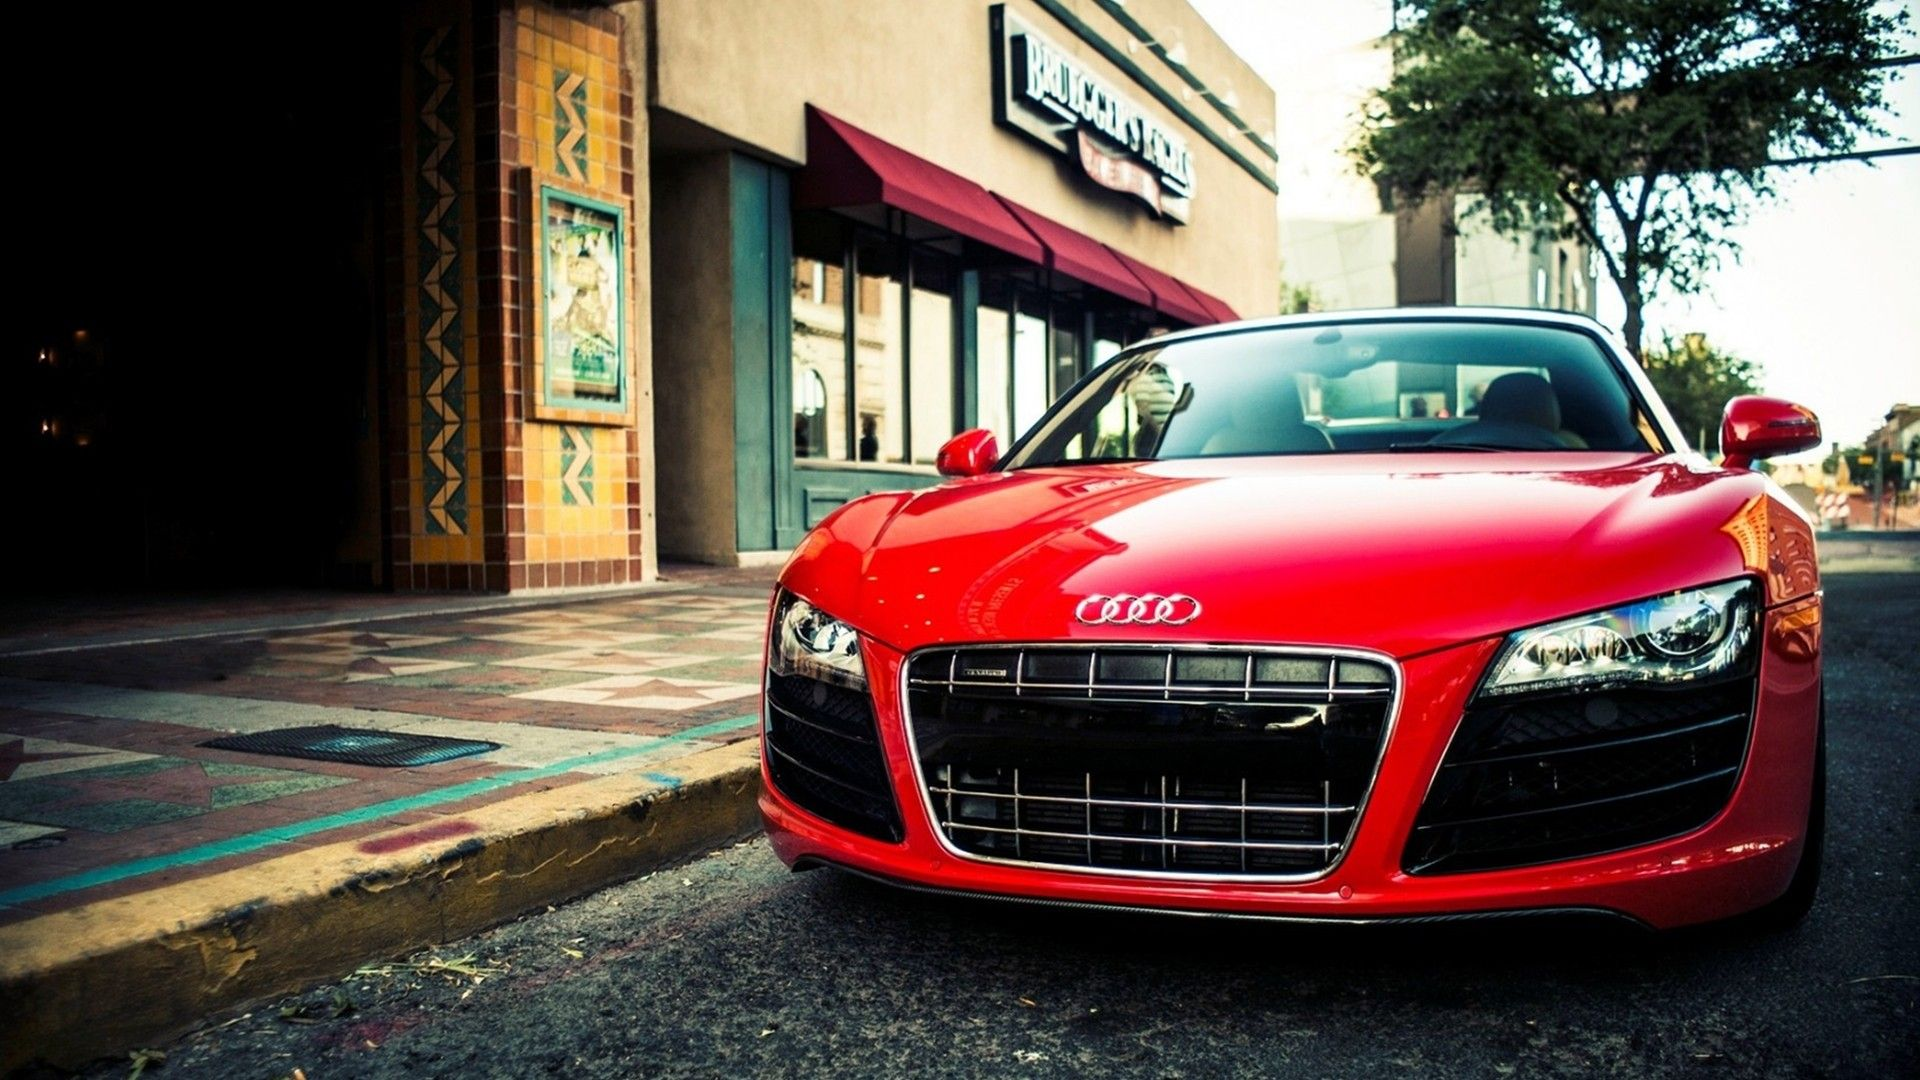 Red Audi R8 Hd Wallpapers 1080p Super Cars Red Audi Audi R8